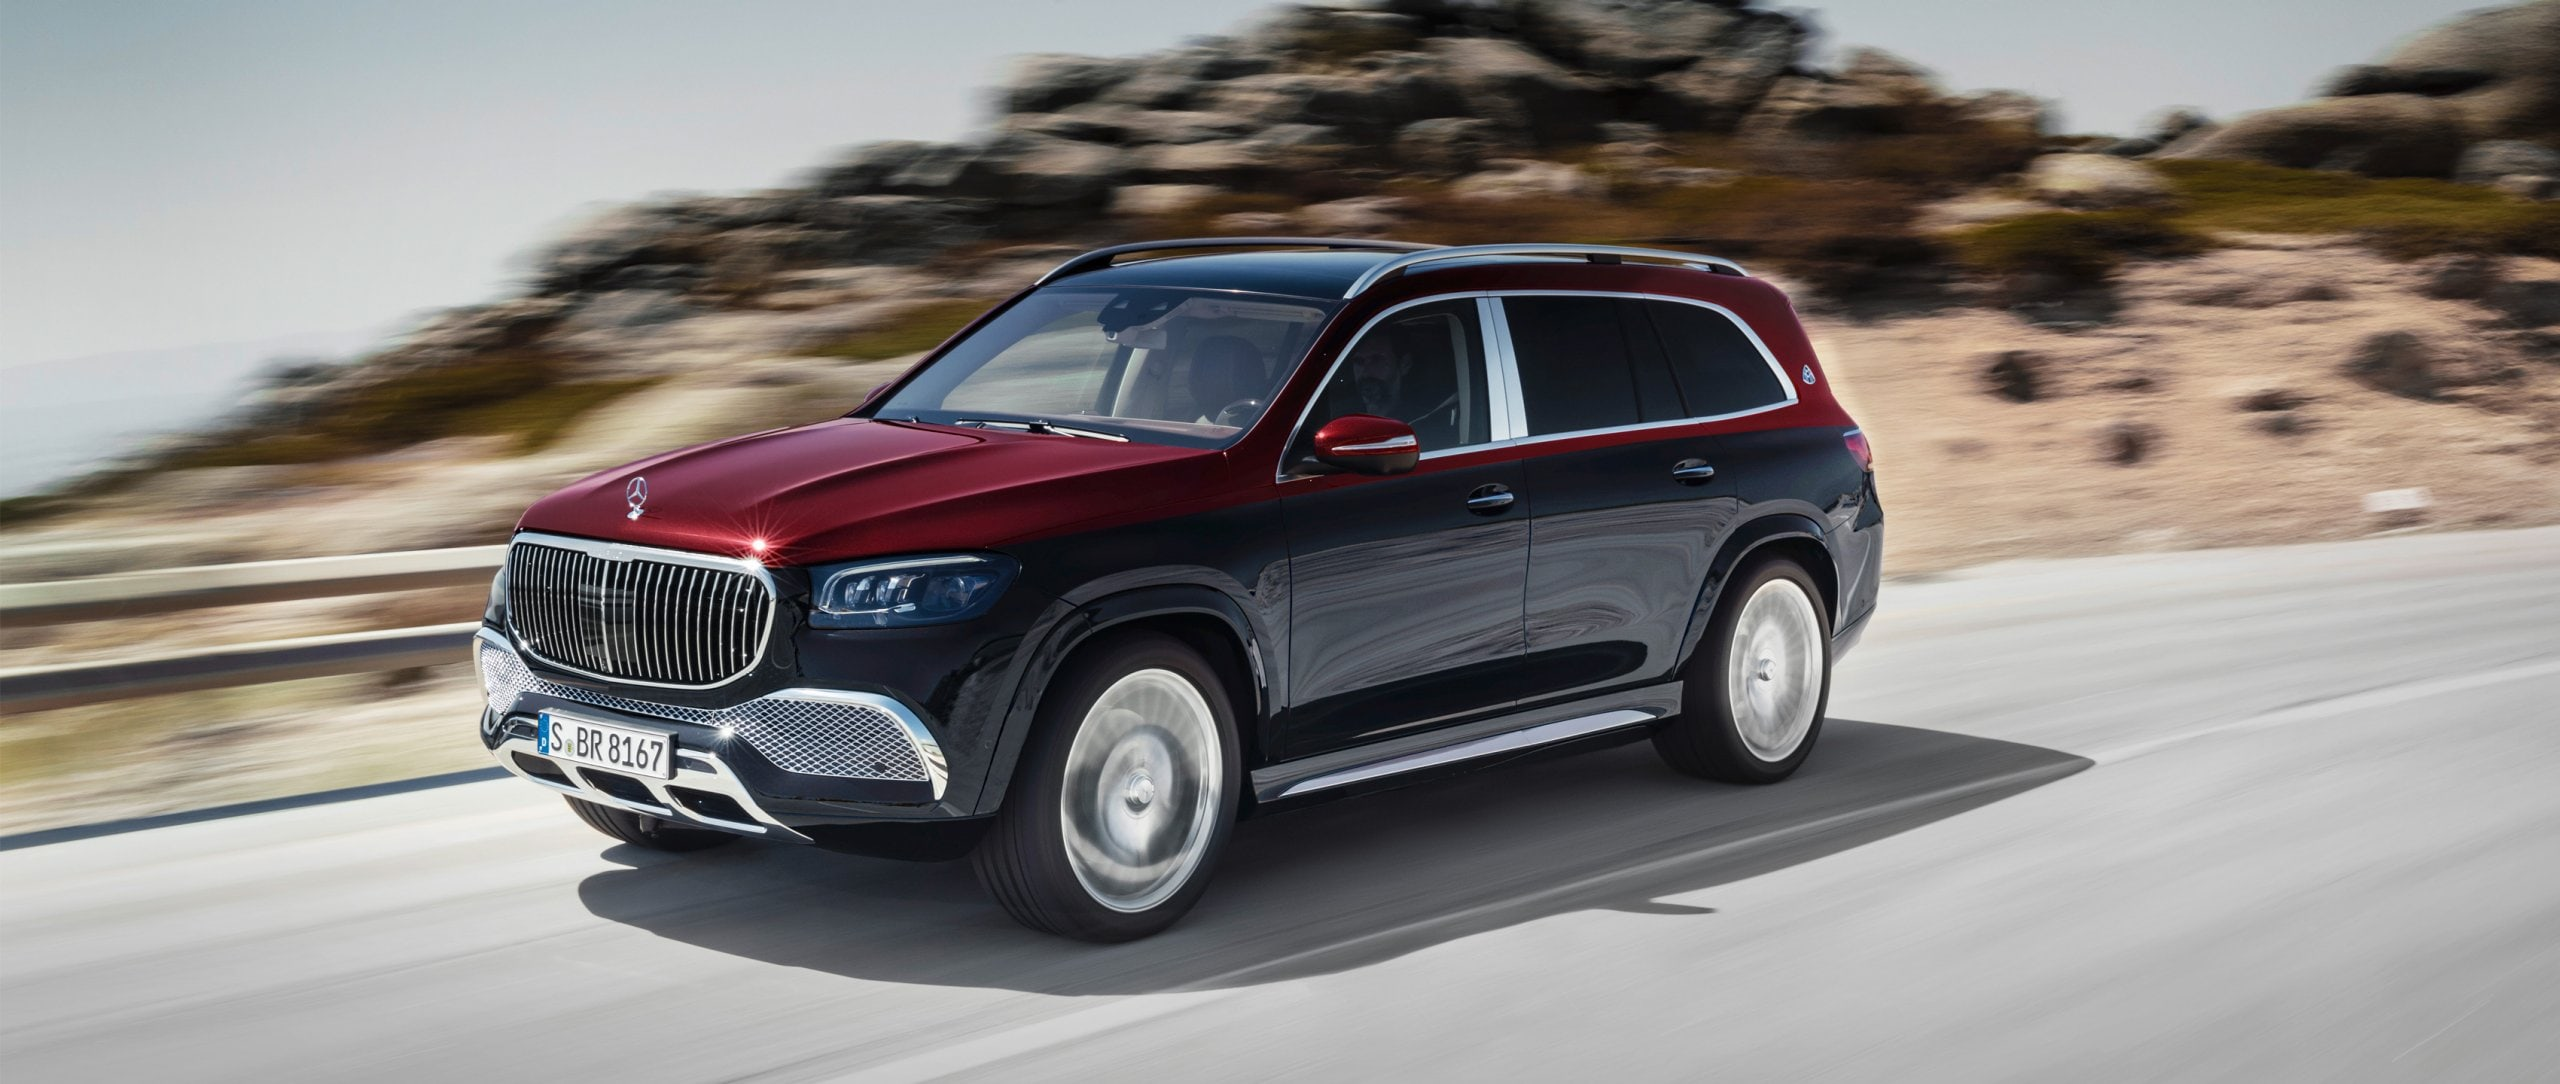 2020 Mercedes GLS Price, Design and Review